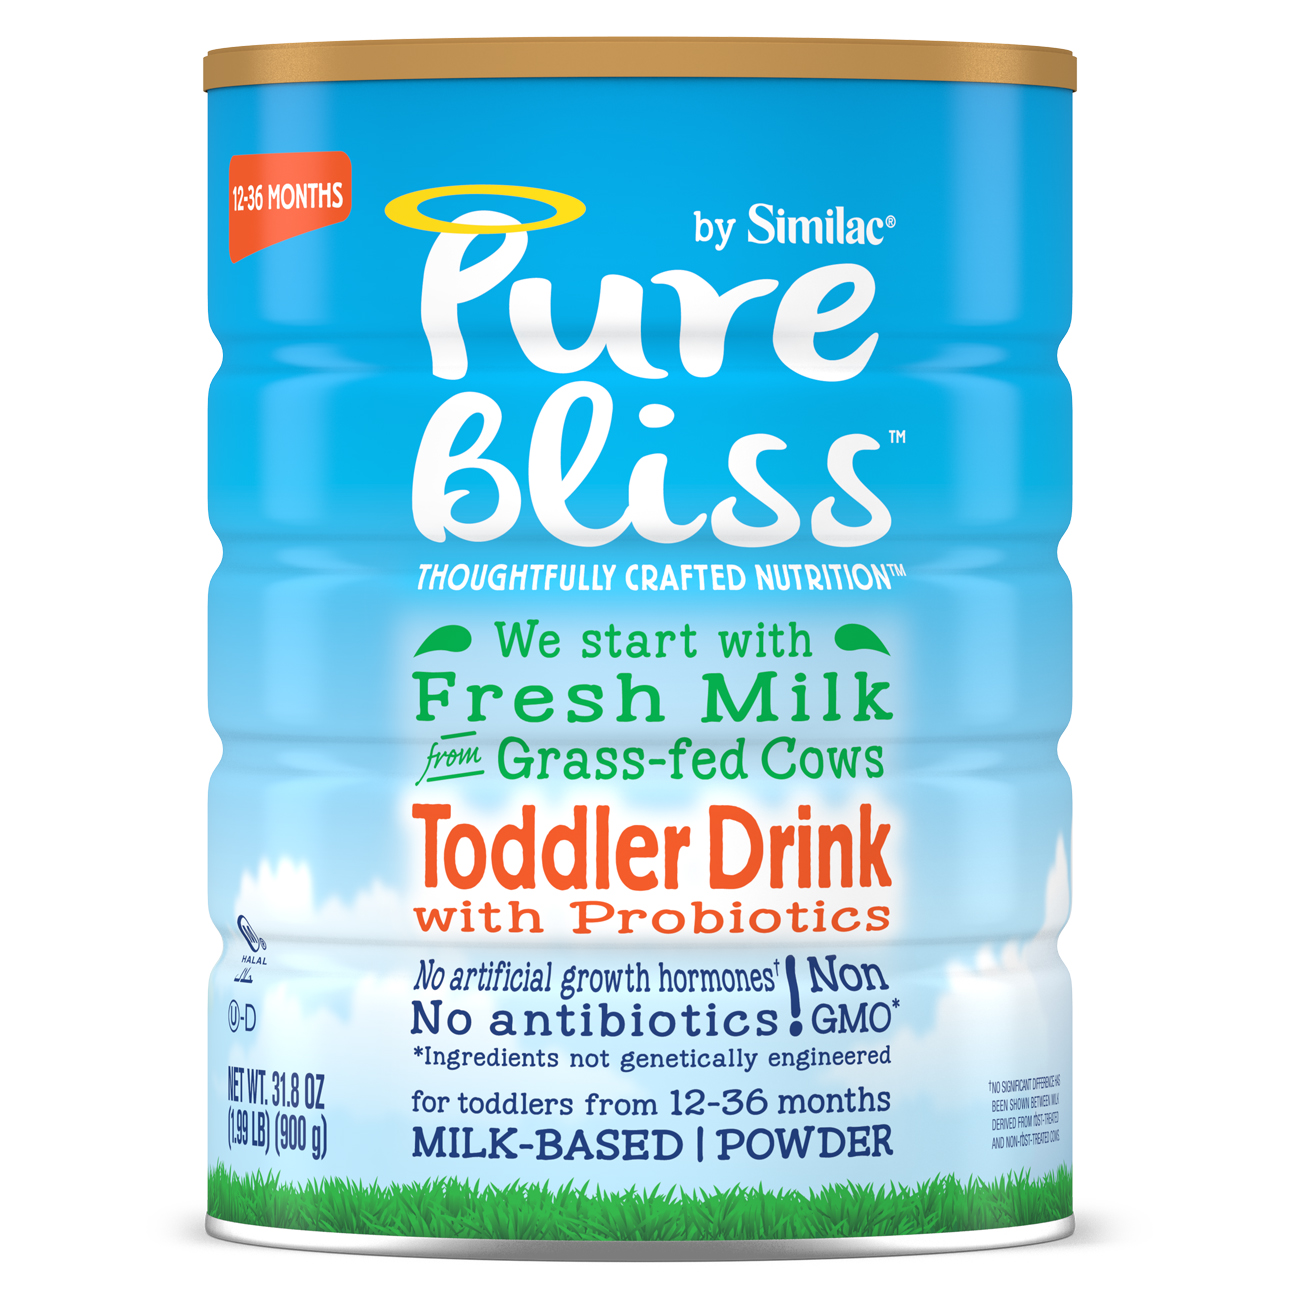 Pure Bliss by Similac Non-GMO Toddler Drink Starts with Fresh Milk from grass-Fed Cows 31.8 oz Can